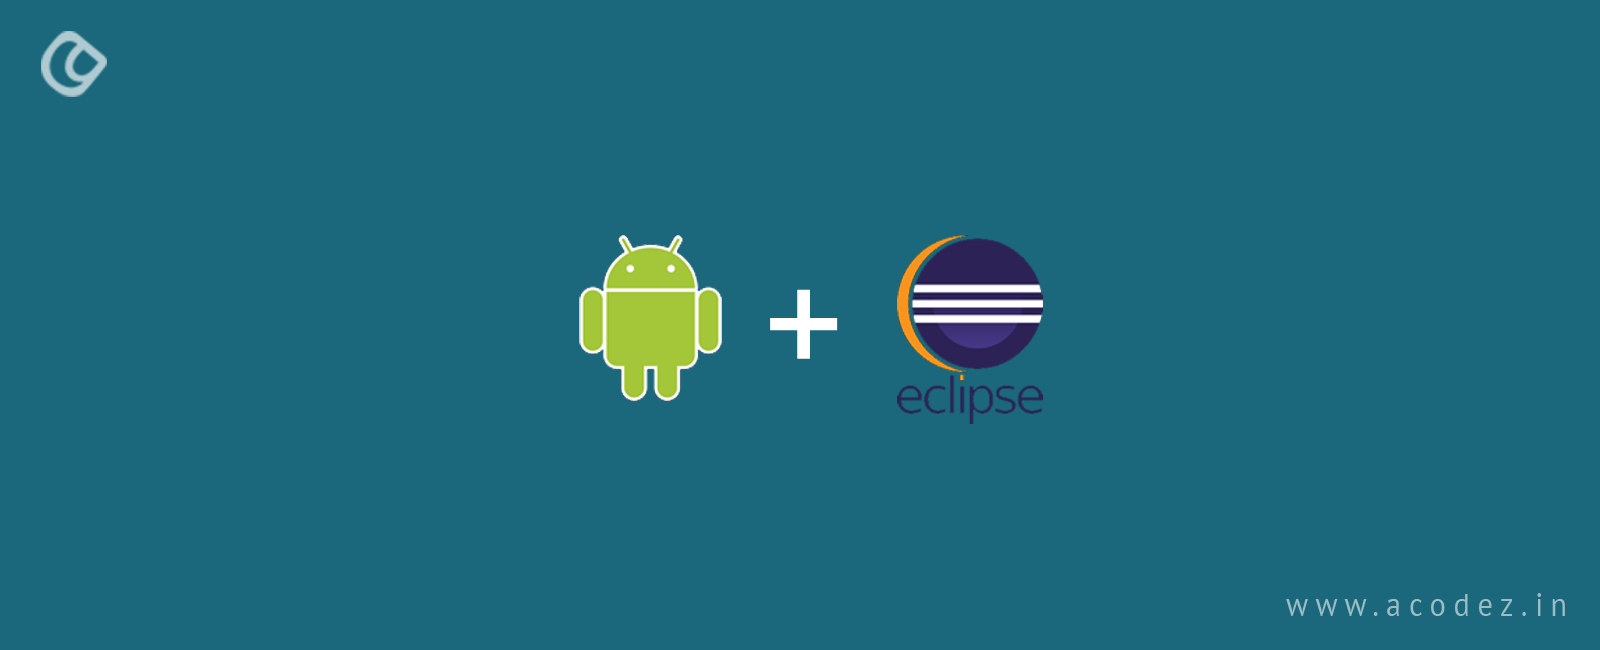 Step-by-Step Guide to Android Development with Eclipse | Acodez